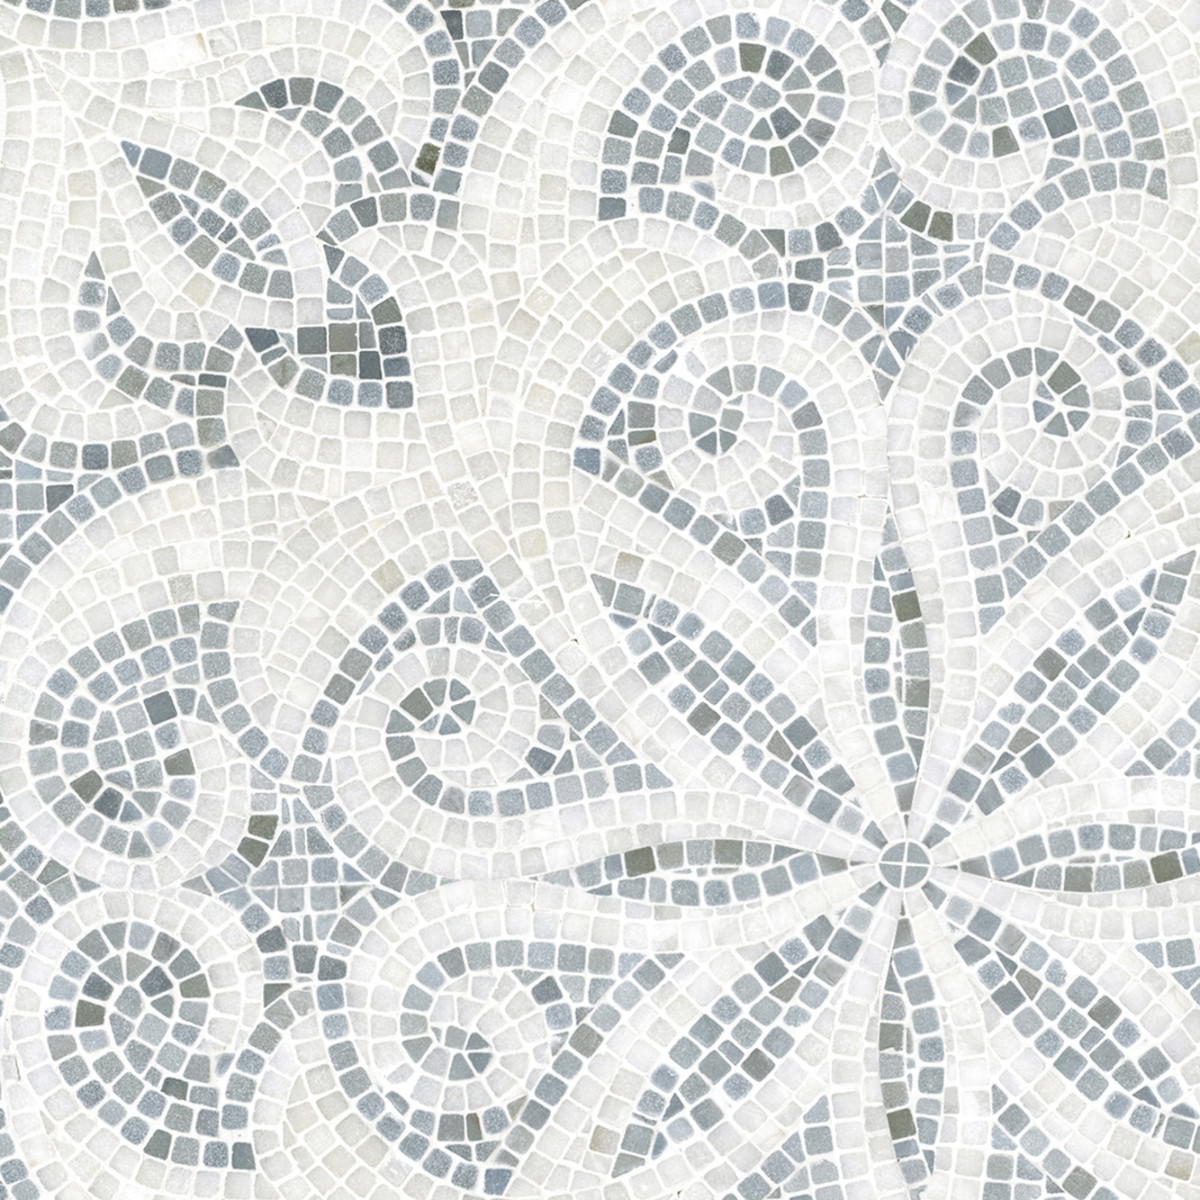 historic mosaic patterns for